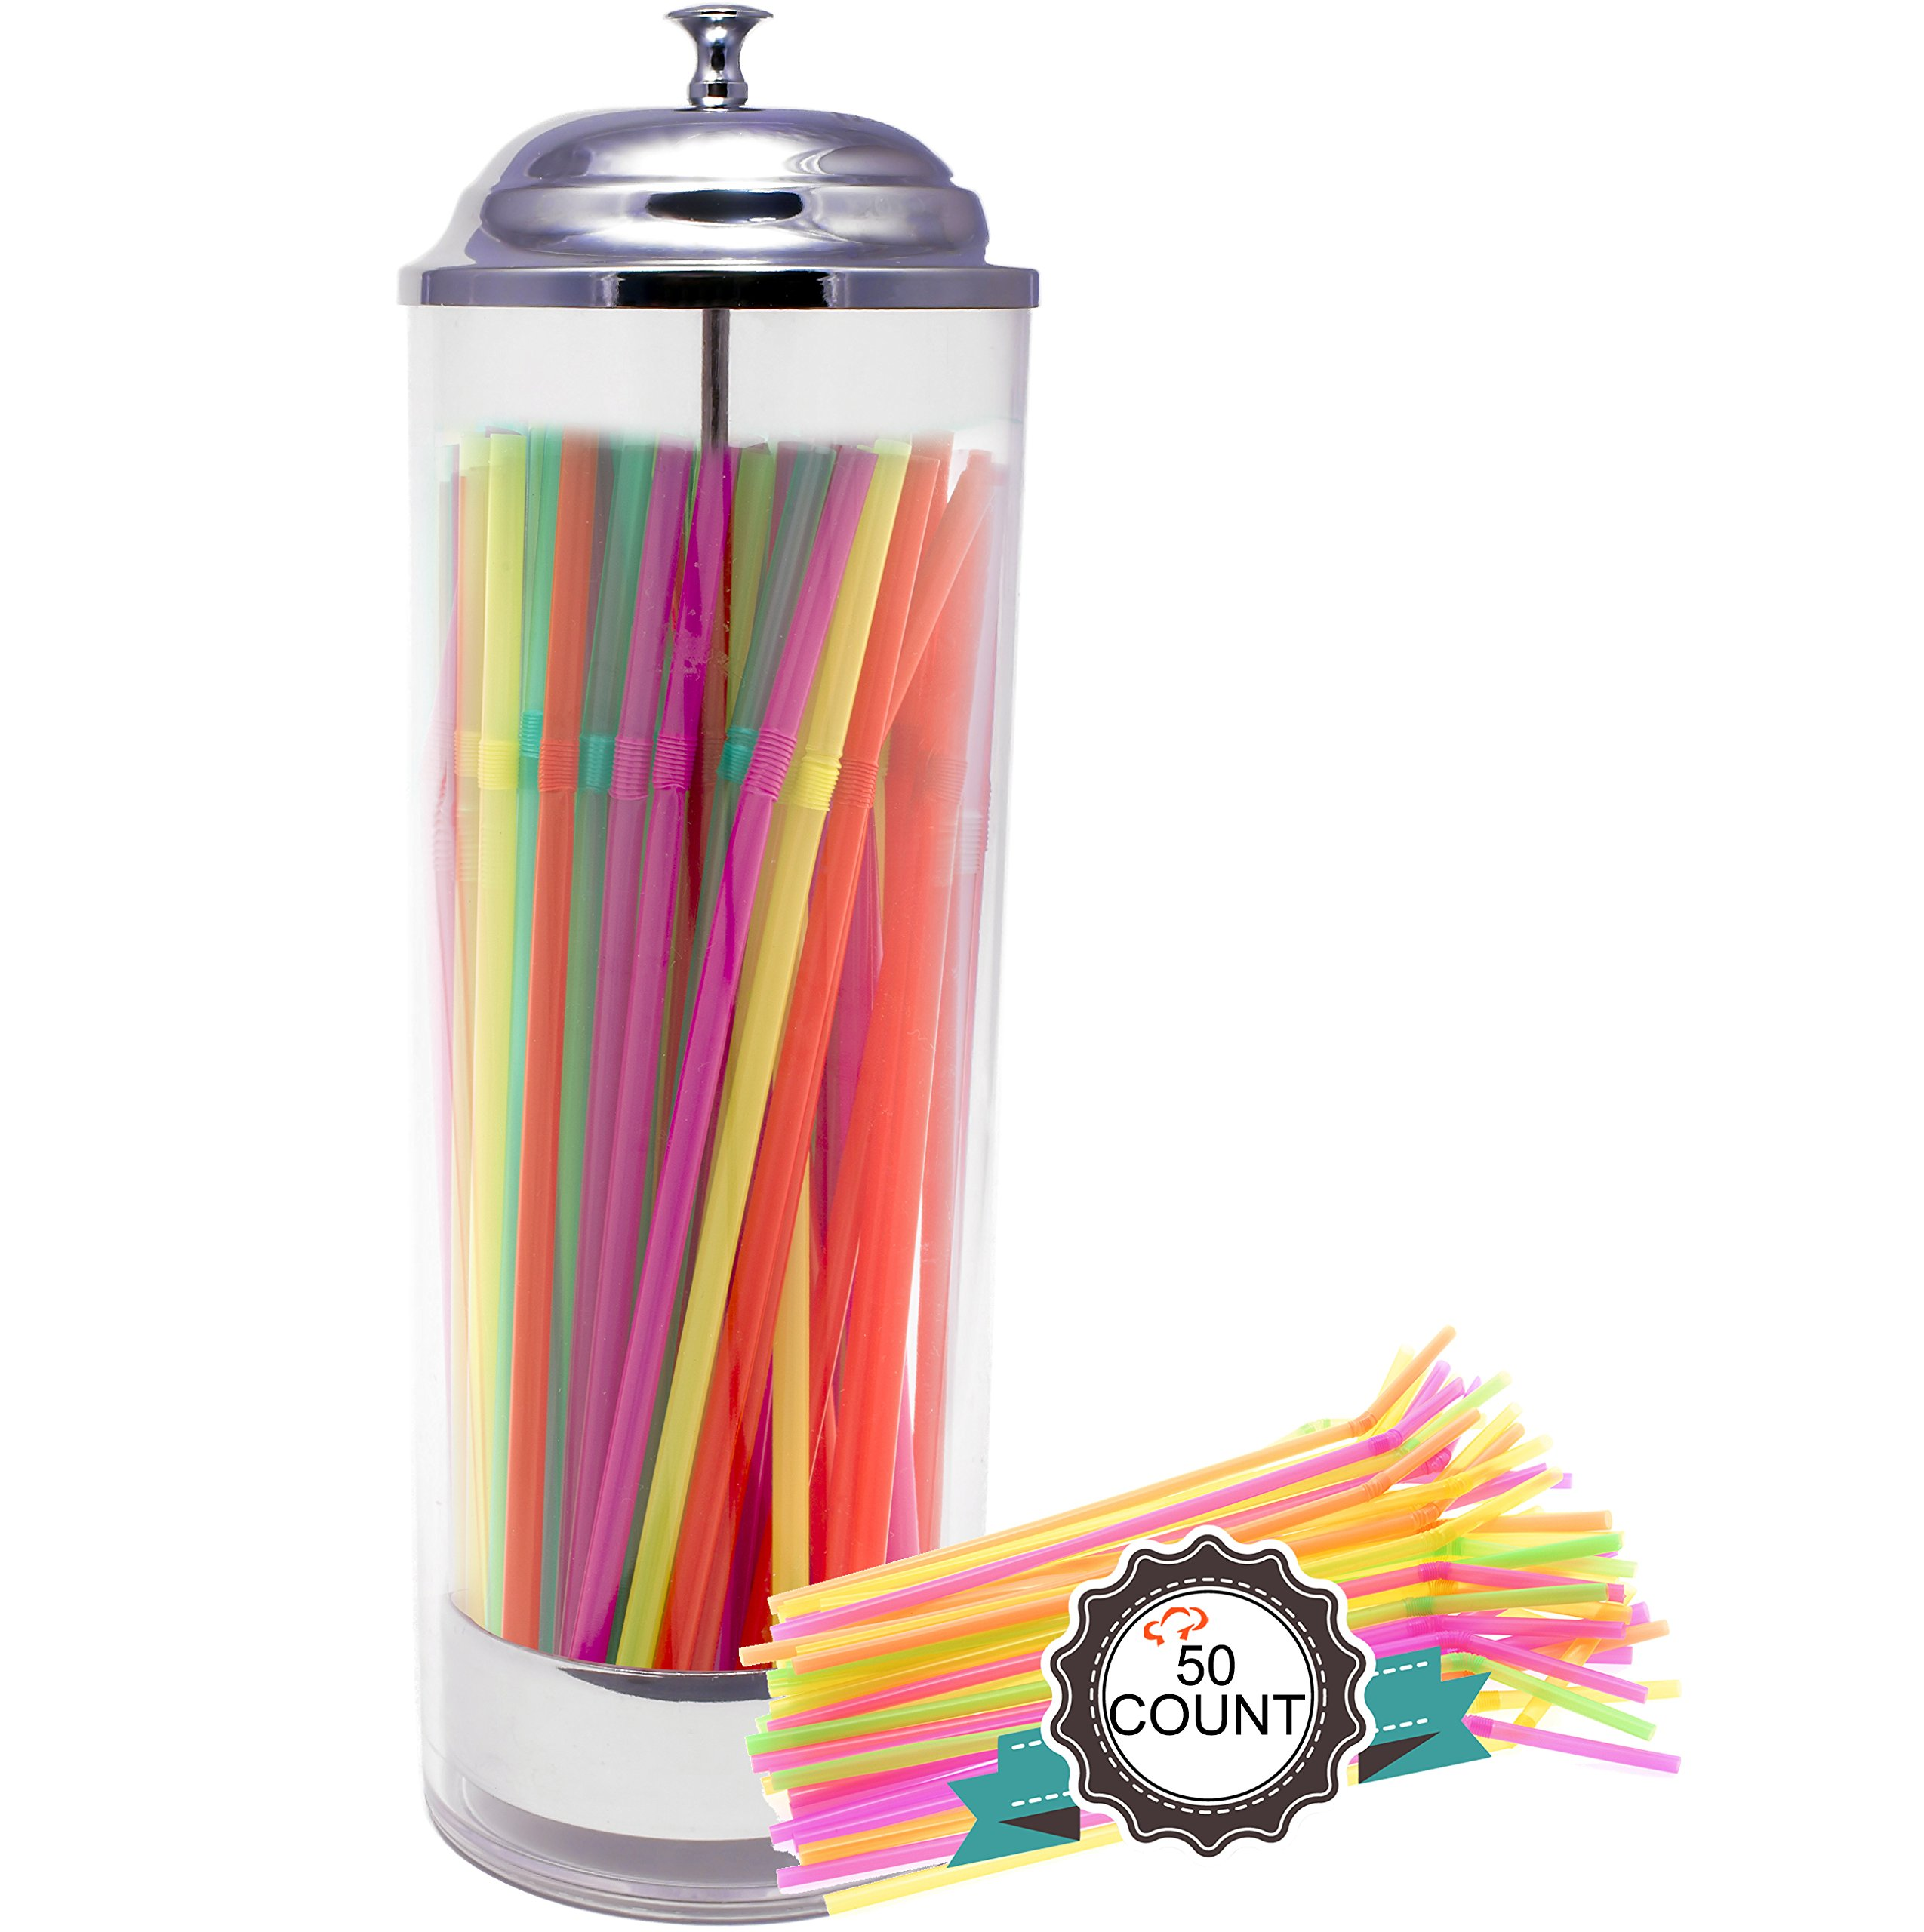 Tiger Chef Plastic Cylinder Straw Holder with 50 Neon Straws, 3.5 x 10.6-Inch, Clear Plastic Pull-up Dispenser with Stainless Steel Lid and Tray by Tiger Chef